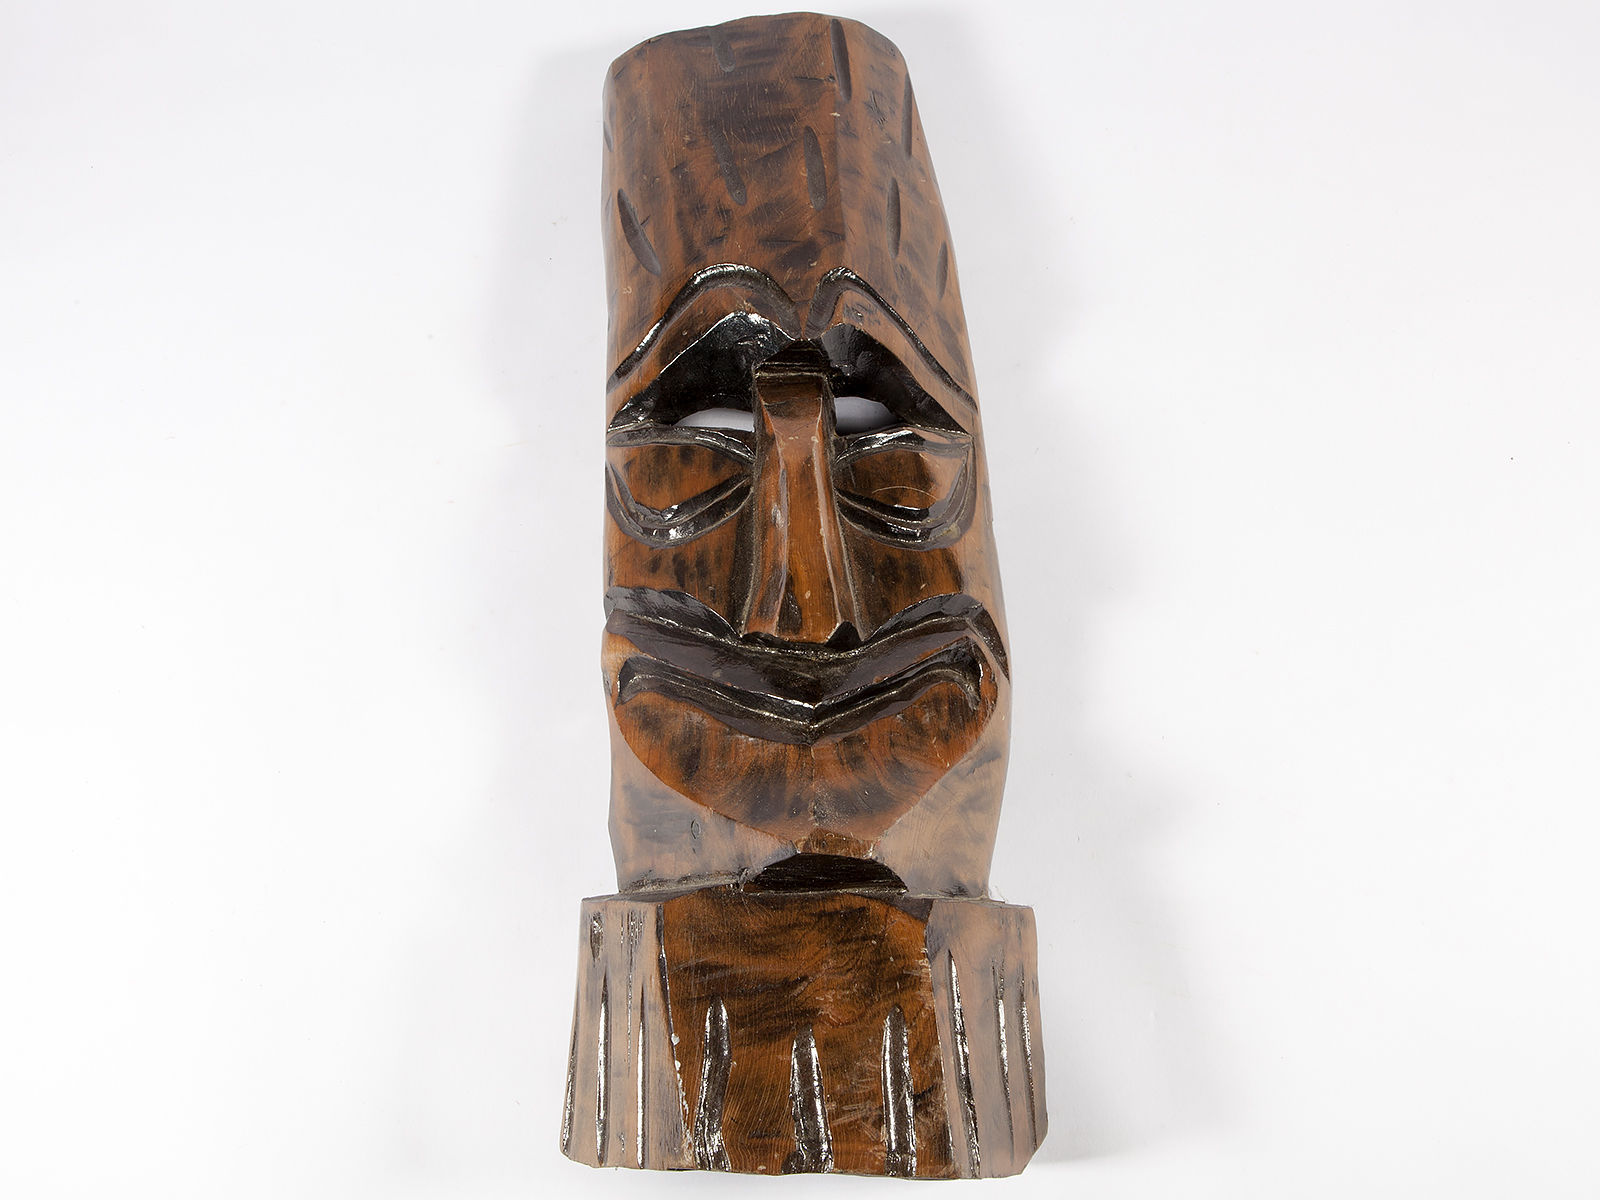 Vintage Wood Tiki Mask - Polynesian Carved Wood Sculpture - Free Shipping